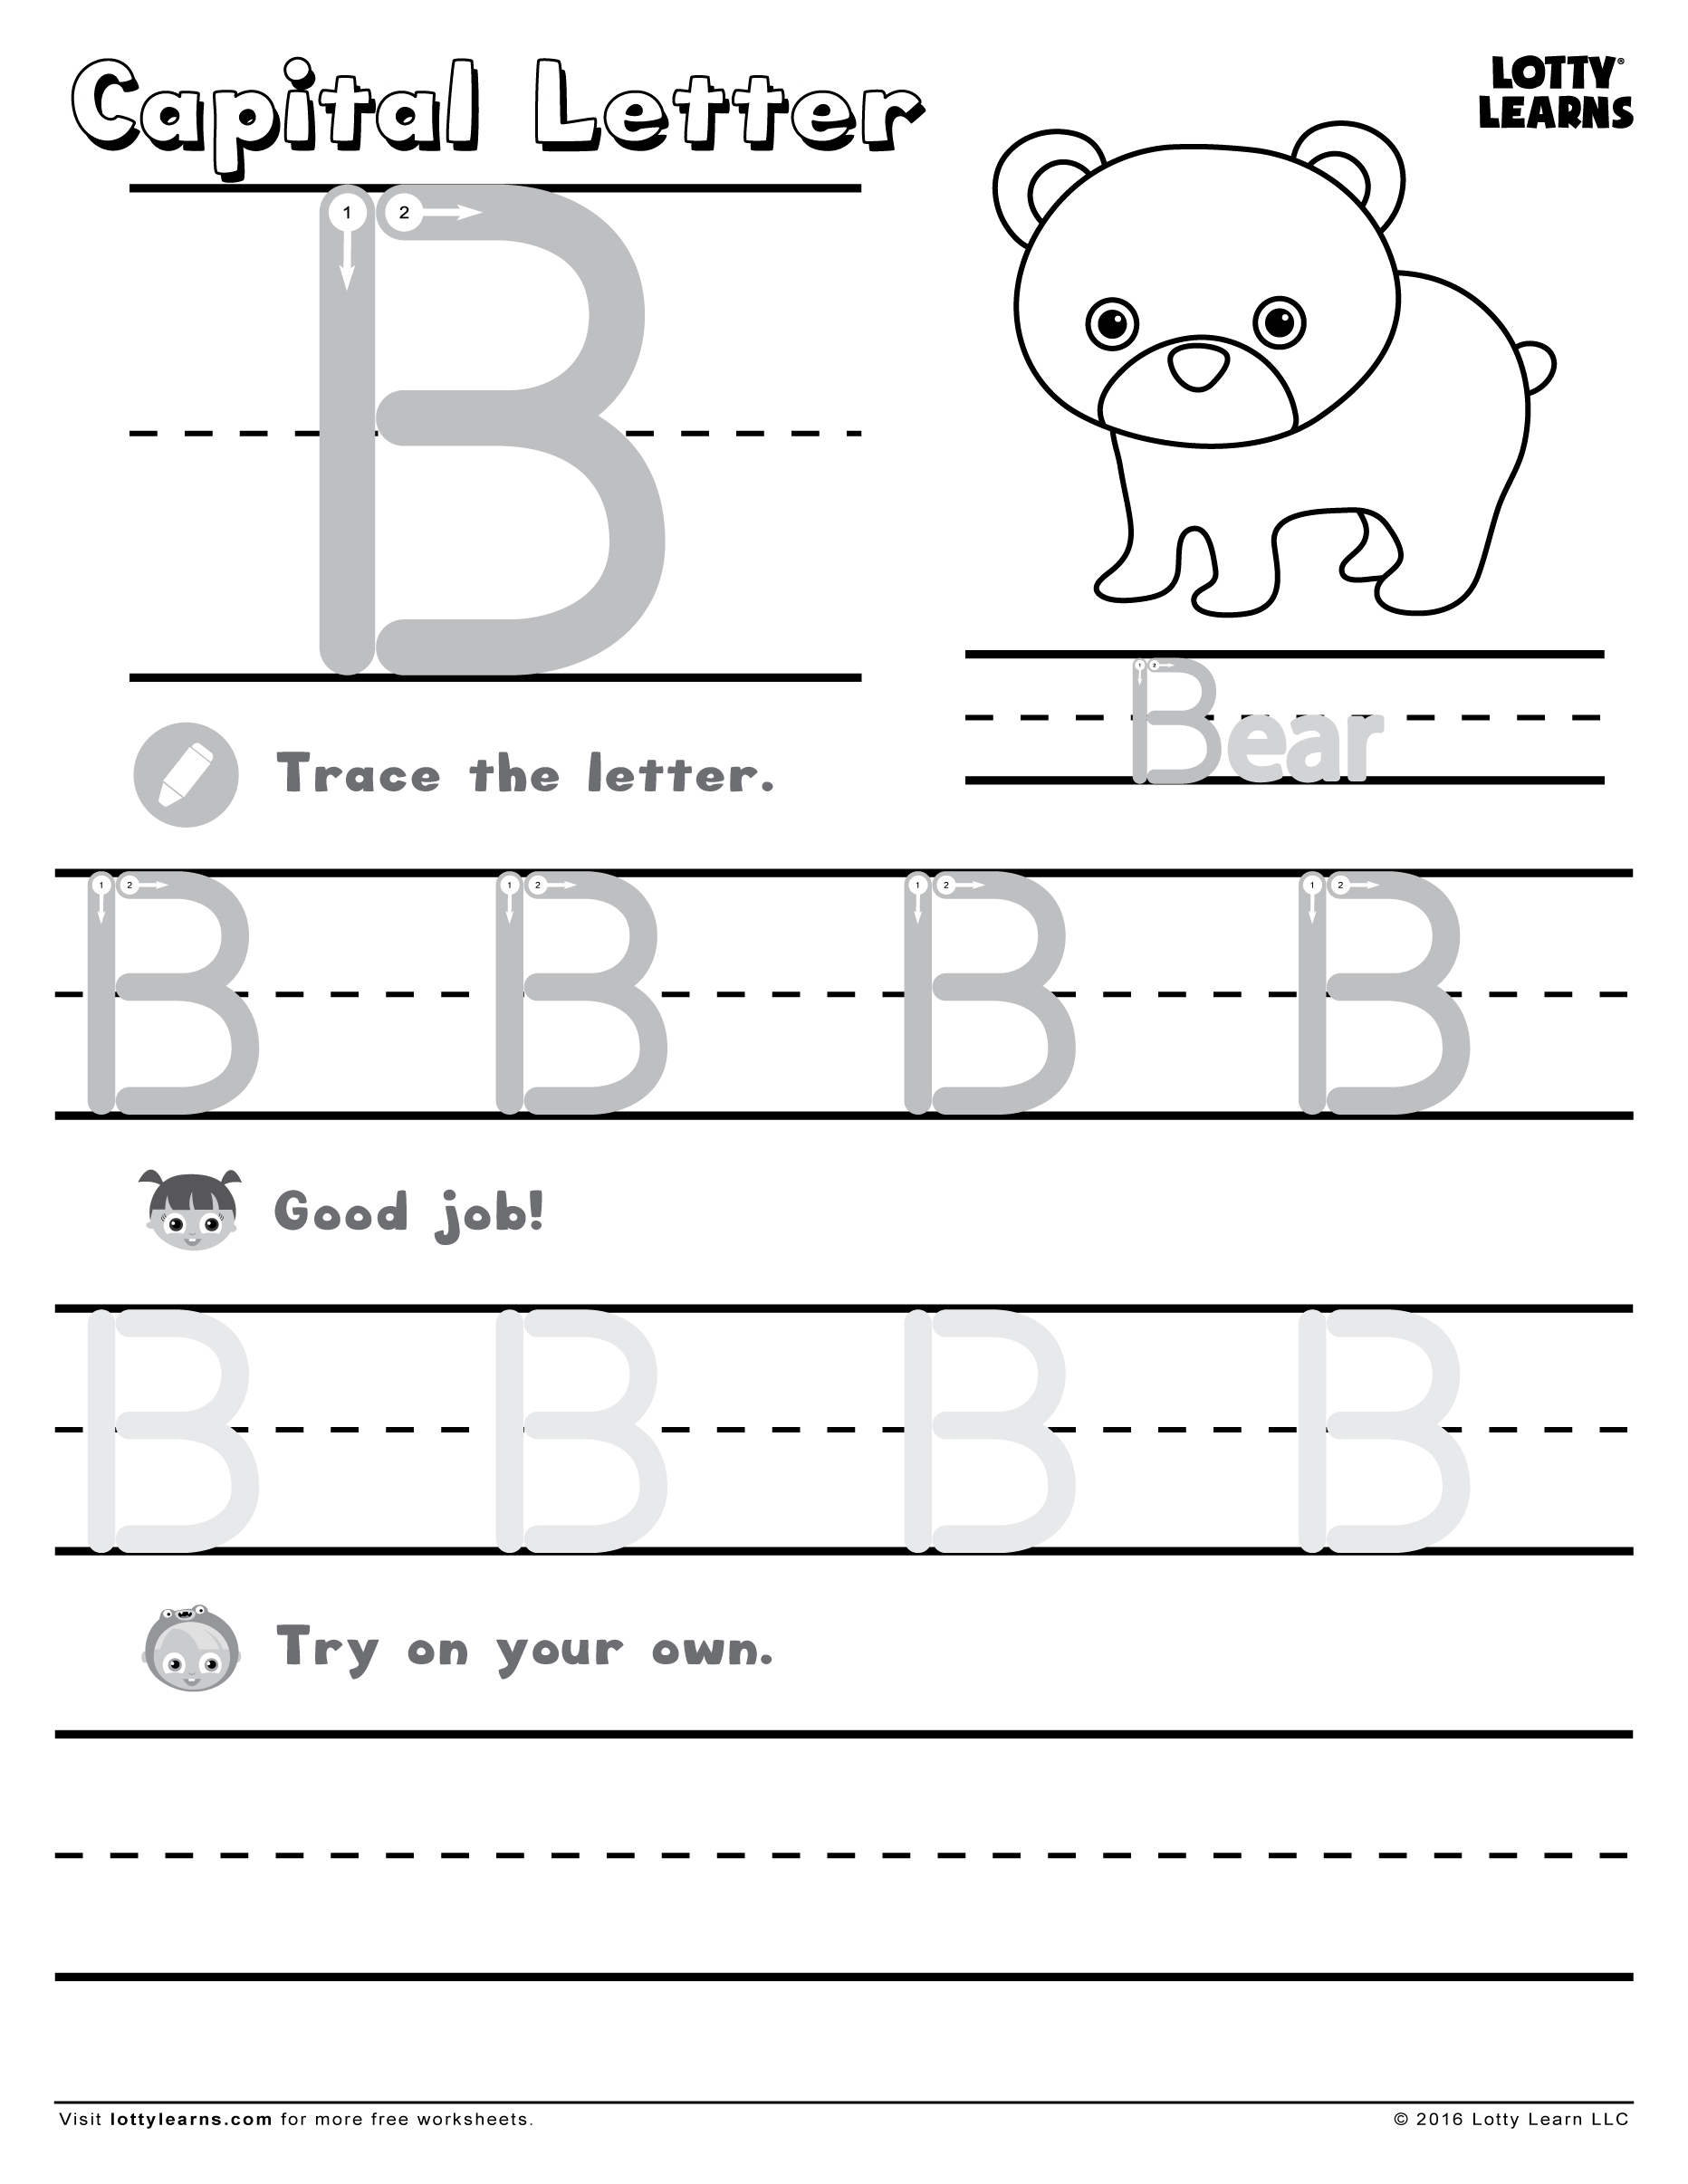 Capital Letter B | Lotty Learns | Learning Letters, Letter B within Letter B Worksheets For Prek